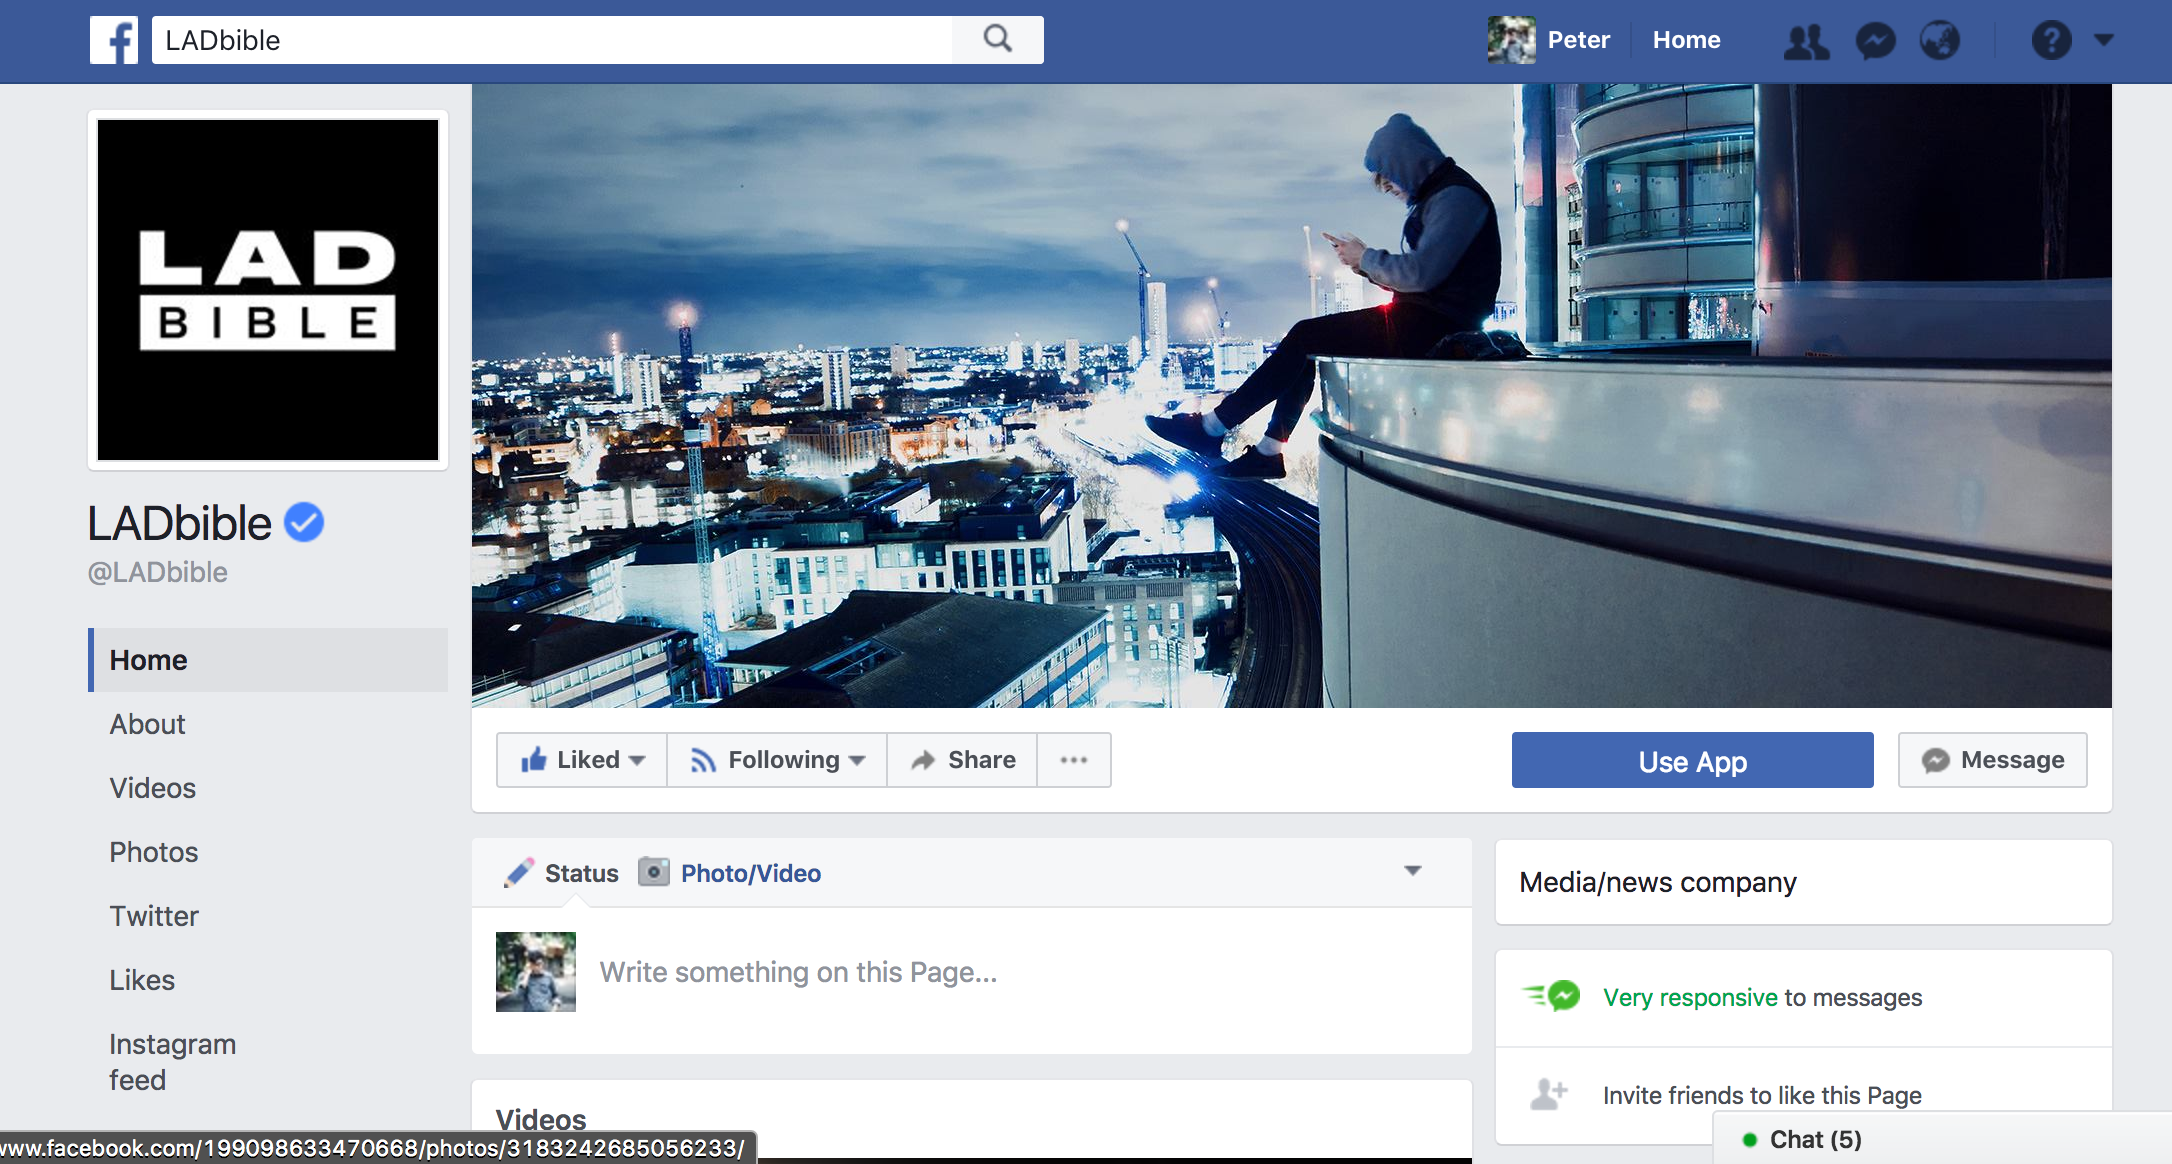 GraphAPI] Fetch public Facebook page's feed by GraphAPI in 3